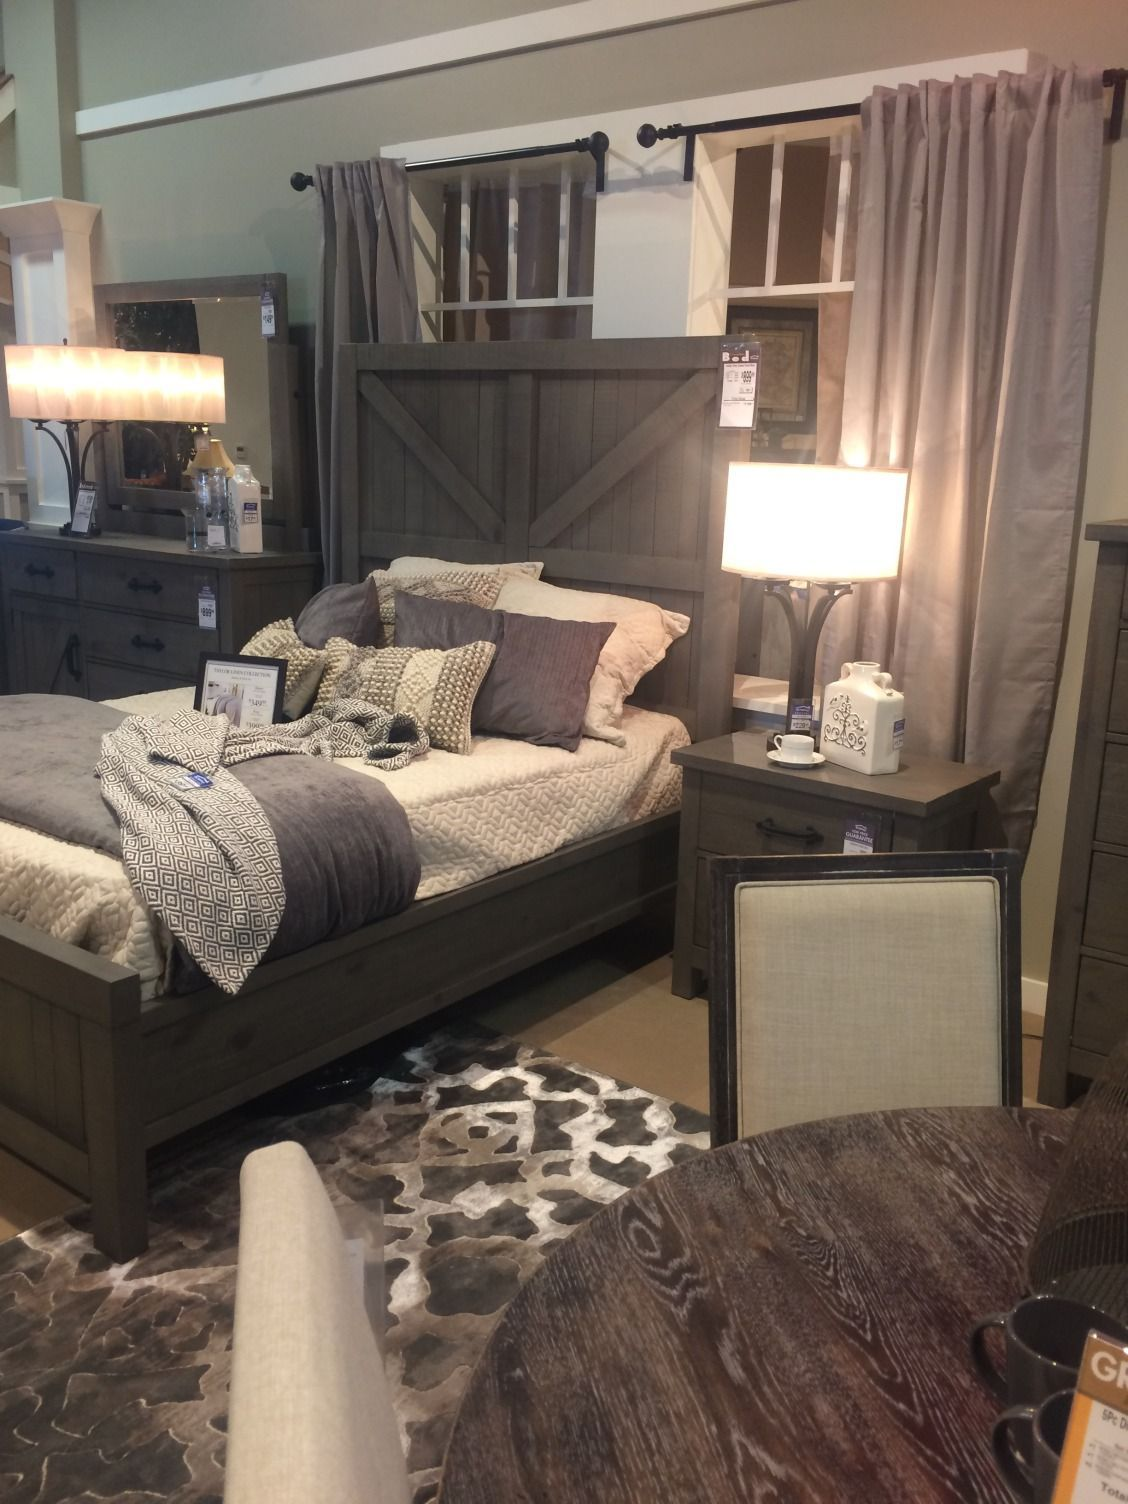 What Do You Think About This Grey Rustic Contemporary Bedroom Set